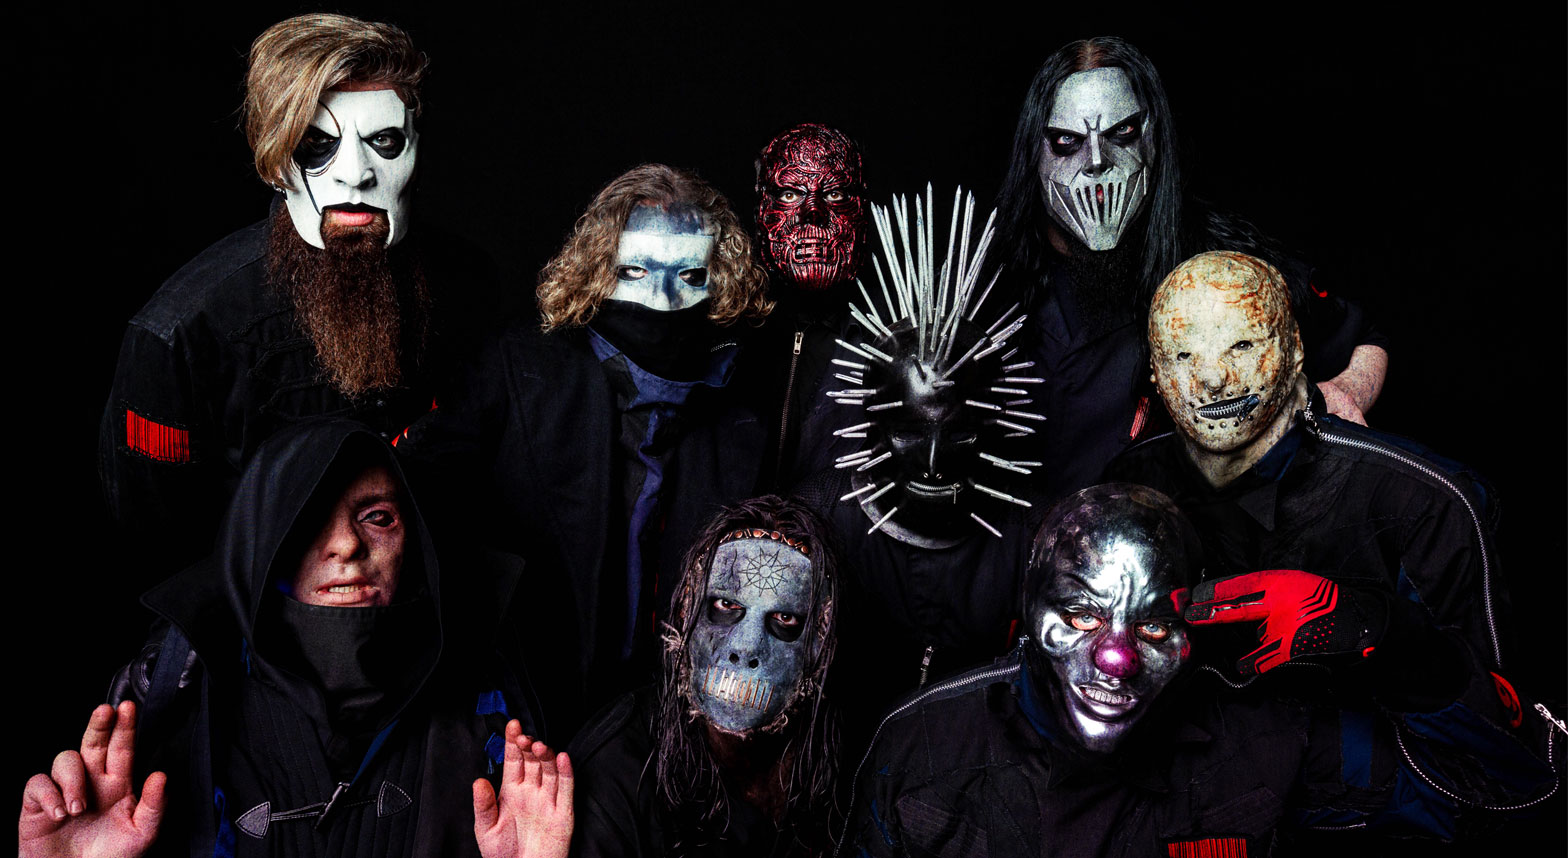 Slipknot band with masks all in black